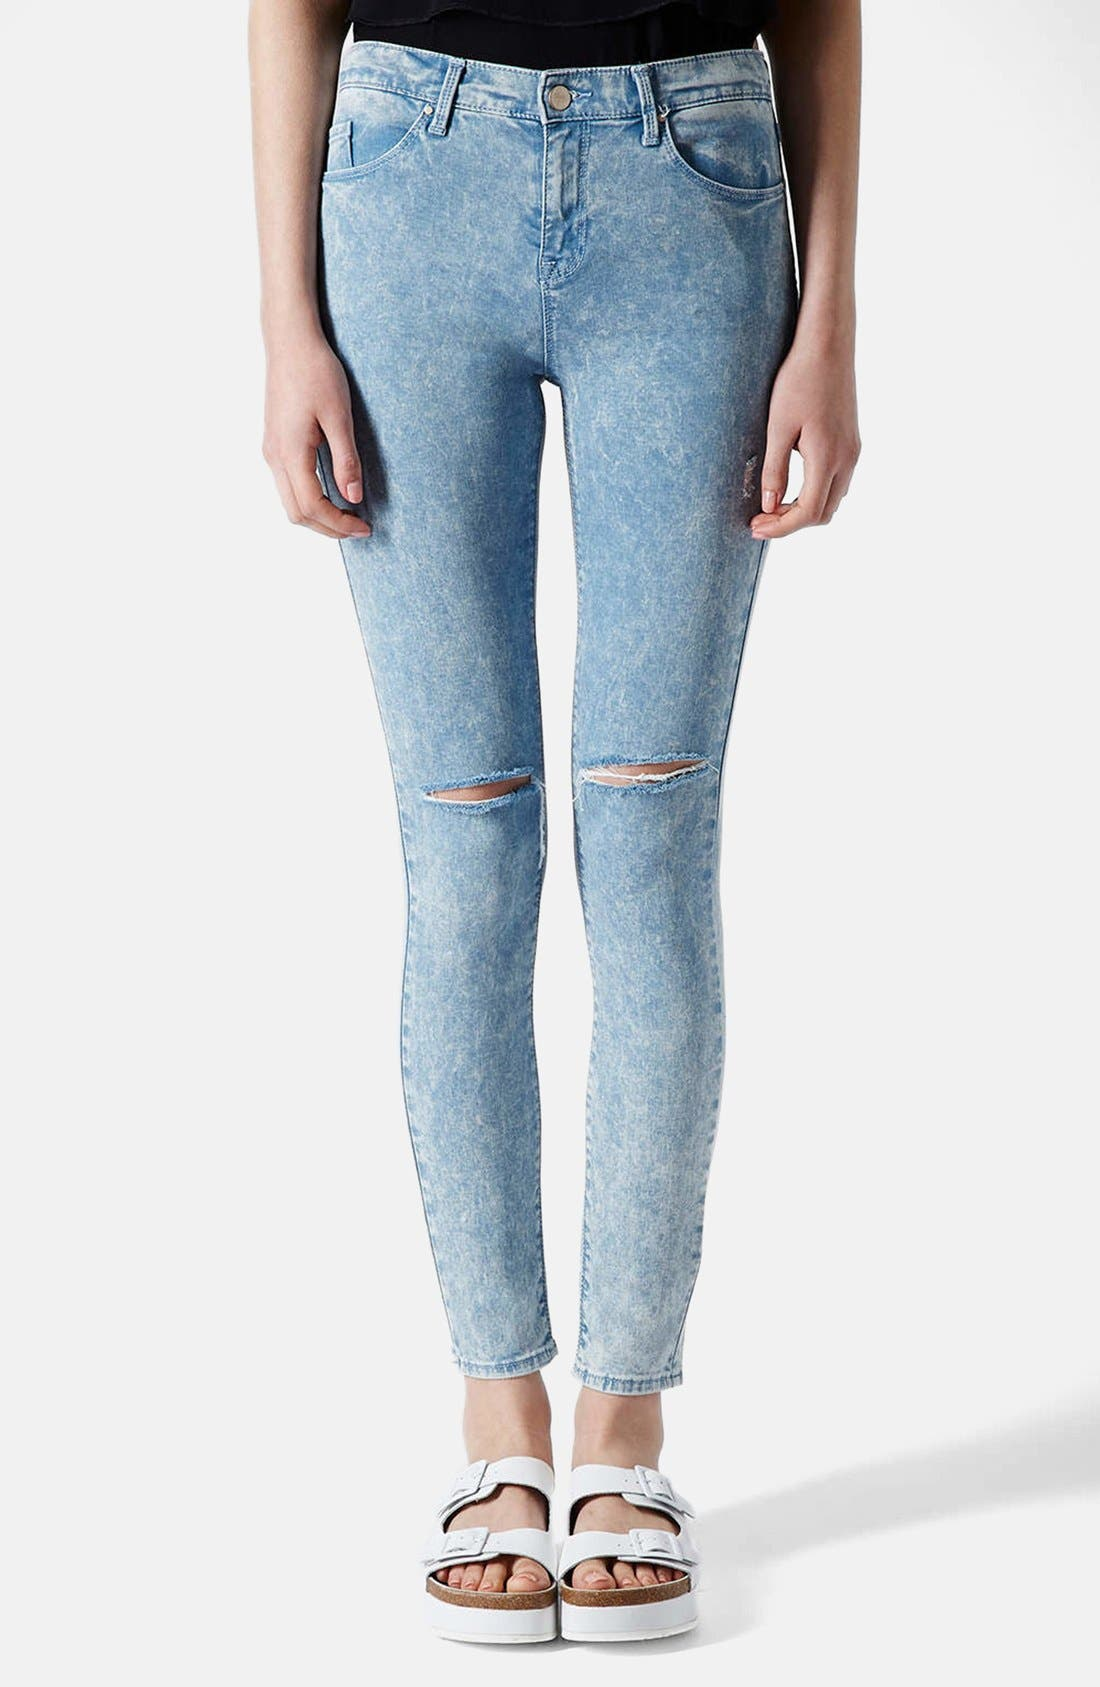 Alternate Image 1 Selected - Topshop Moto 'Leigh' Acid Wash Ripped Skinny Jeans (Light Blue) (Regular & Short)